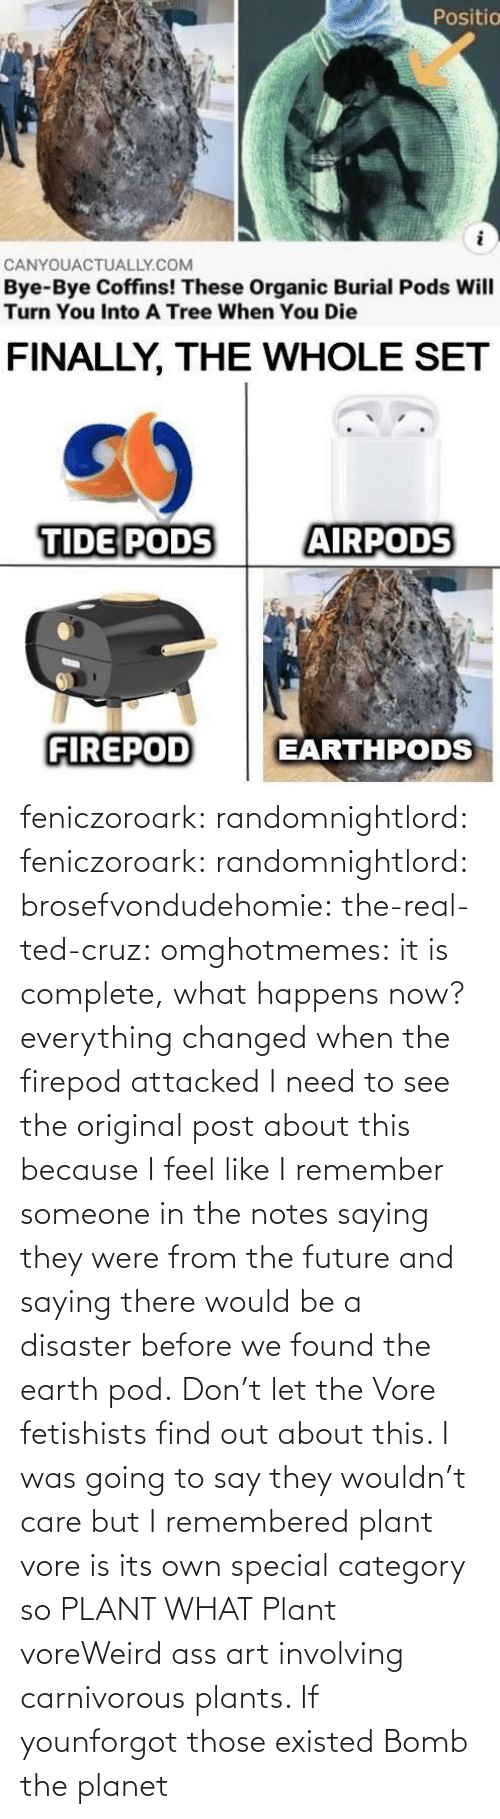 out: feniczoroark:  randomnightlord:  feniczoroark:  randomnightlord:  brosefvondudehomie: the-real-ted-cruz:  omghotmemes: it is complete, what happens now? everything changed when the firepod attacked    I need to see the original post about this because I feel like I remember someone in the notes saying they were from the future and saying there would be a disaster before we found the earth pod.    Don't let the Vore fetishists find out about this.    I was going to say they wouldn't care but I remembered plant vore is its own special category so   PLANT WHAT   Plant voreWeird ass art involving carnivorous plants. If younforgot those existed   Bomb the planet